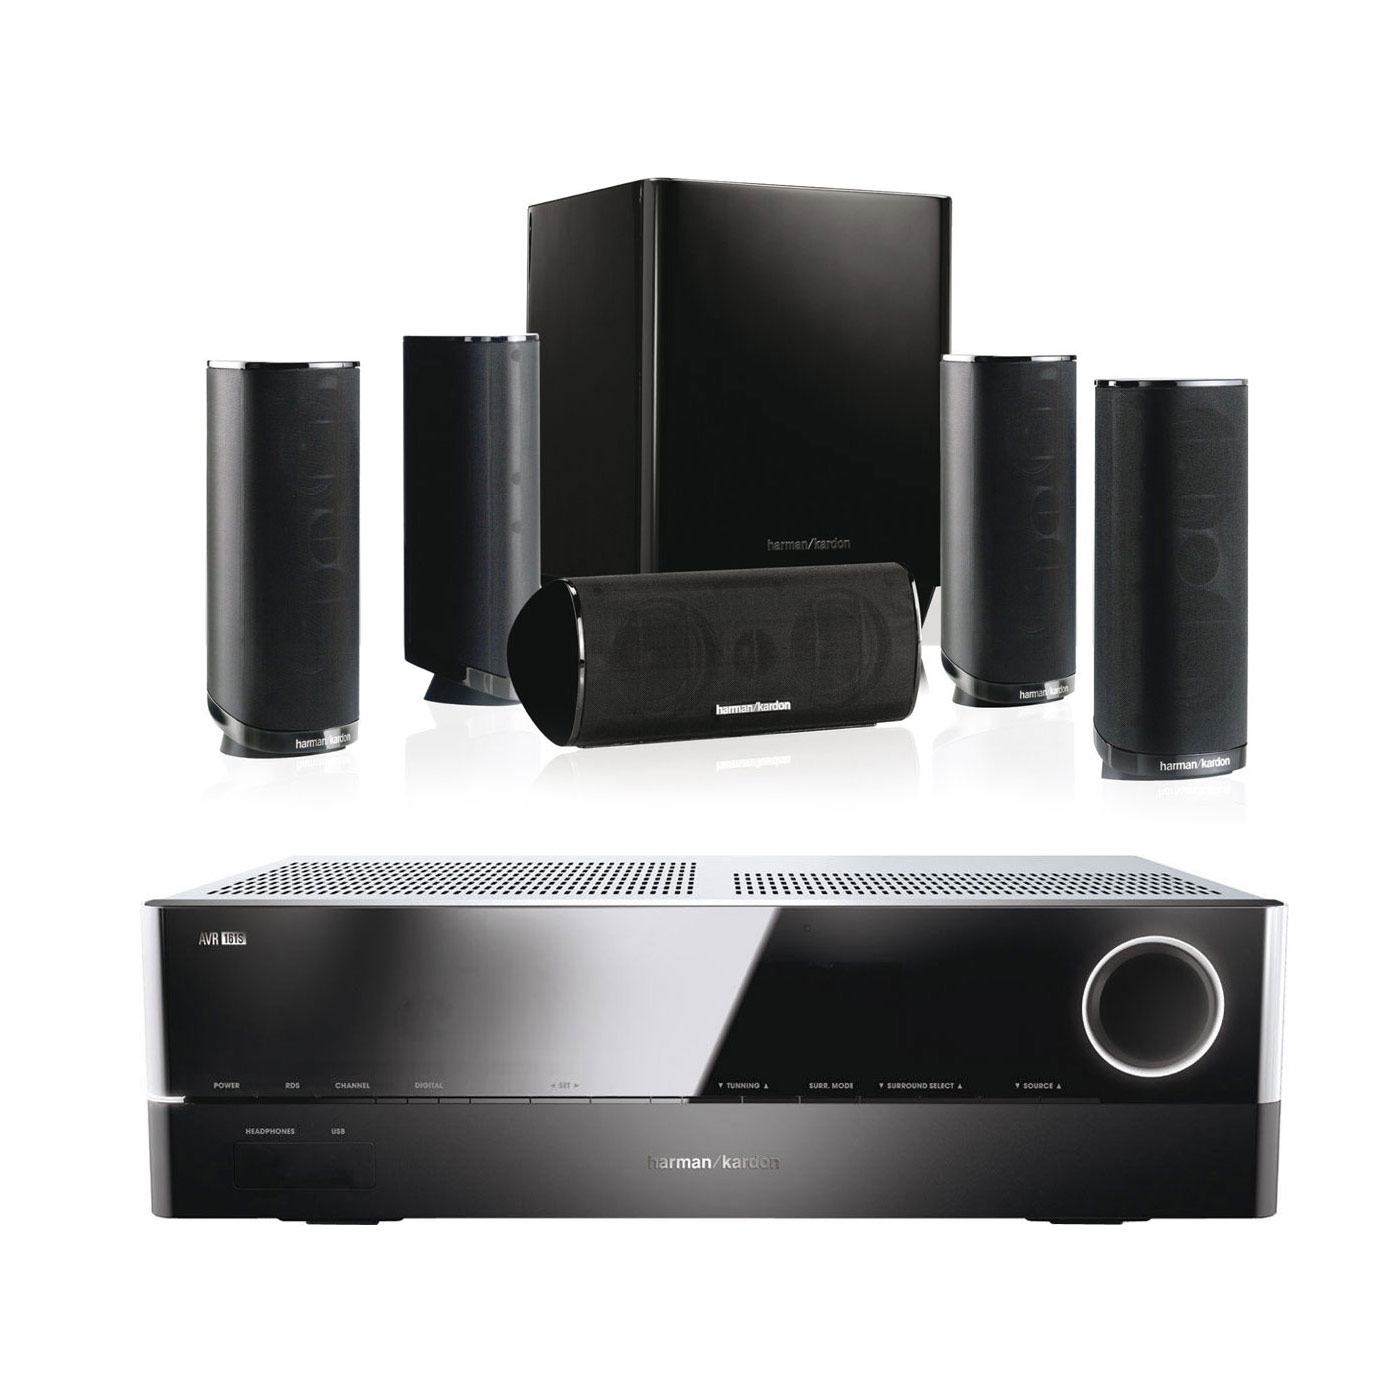 harman kardon avr 161s hkts 16 noir ensemble home cin ma harman kardon sur. Black Bedroom Furniture Sets. Home Design Ideas